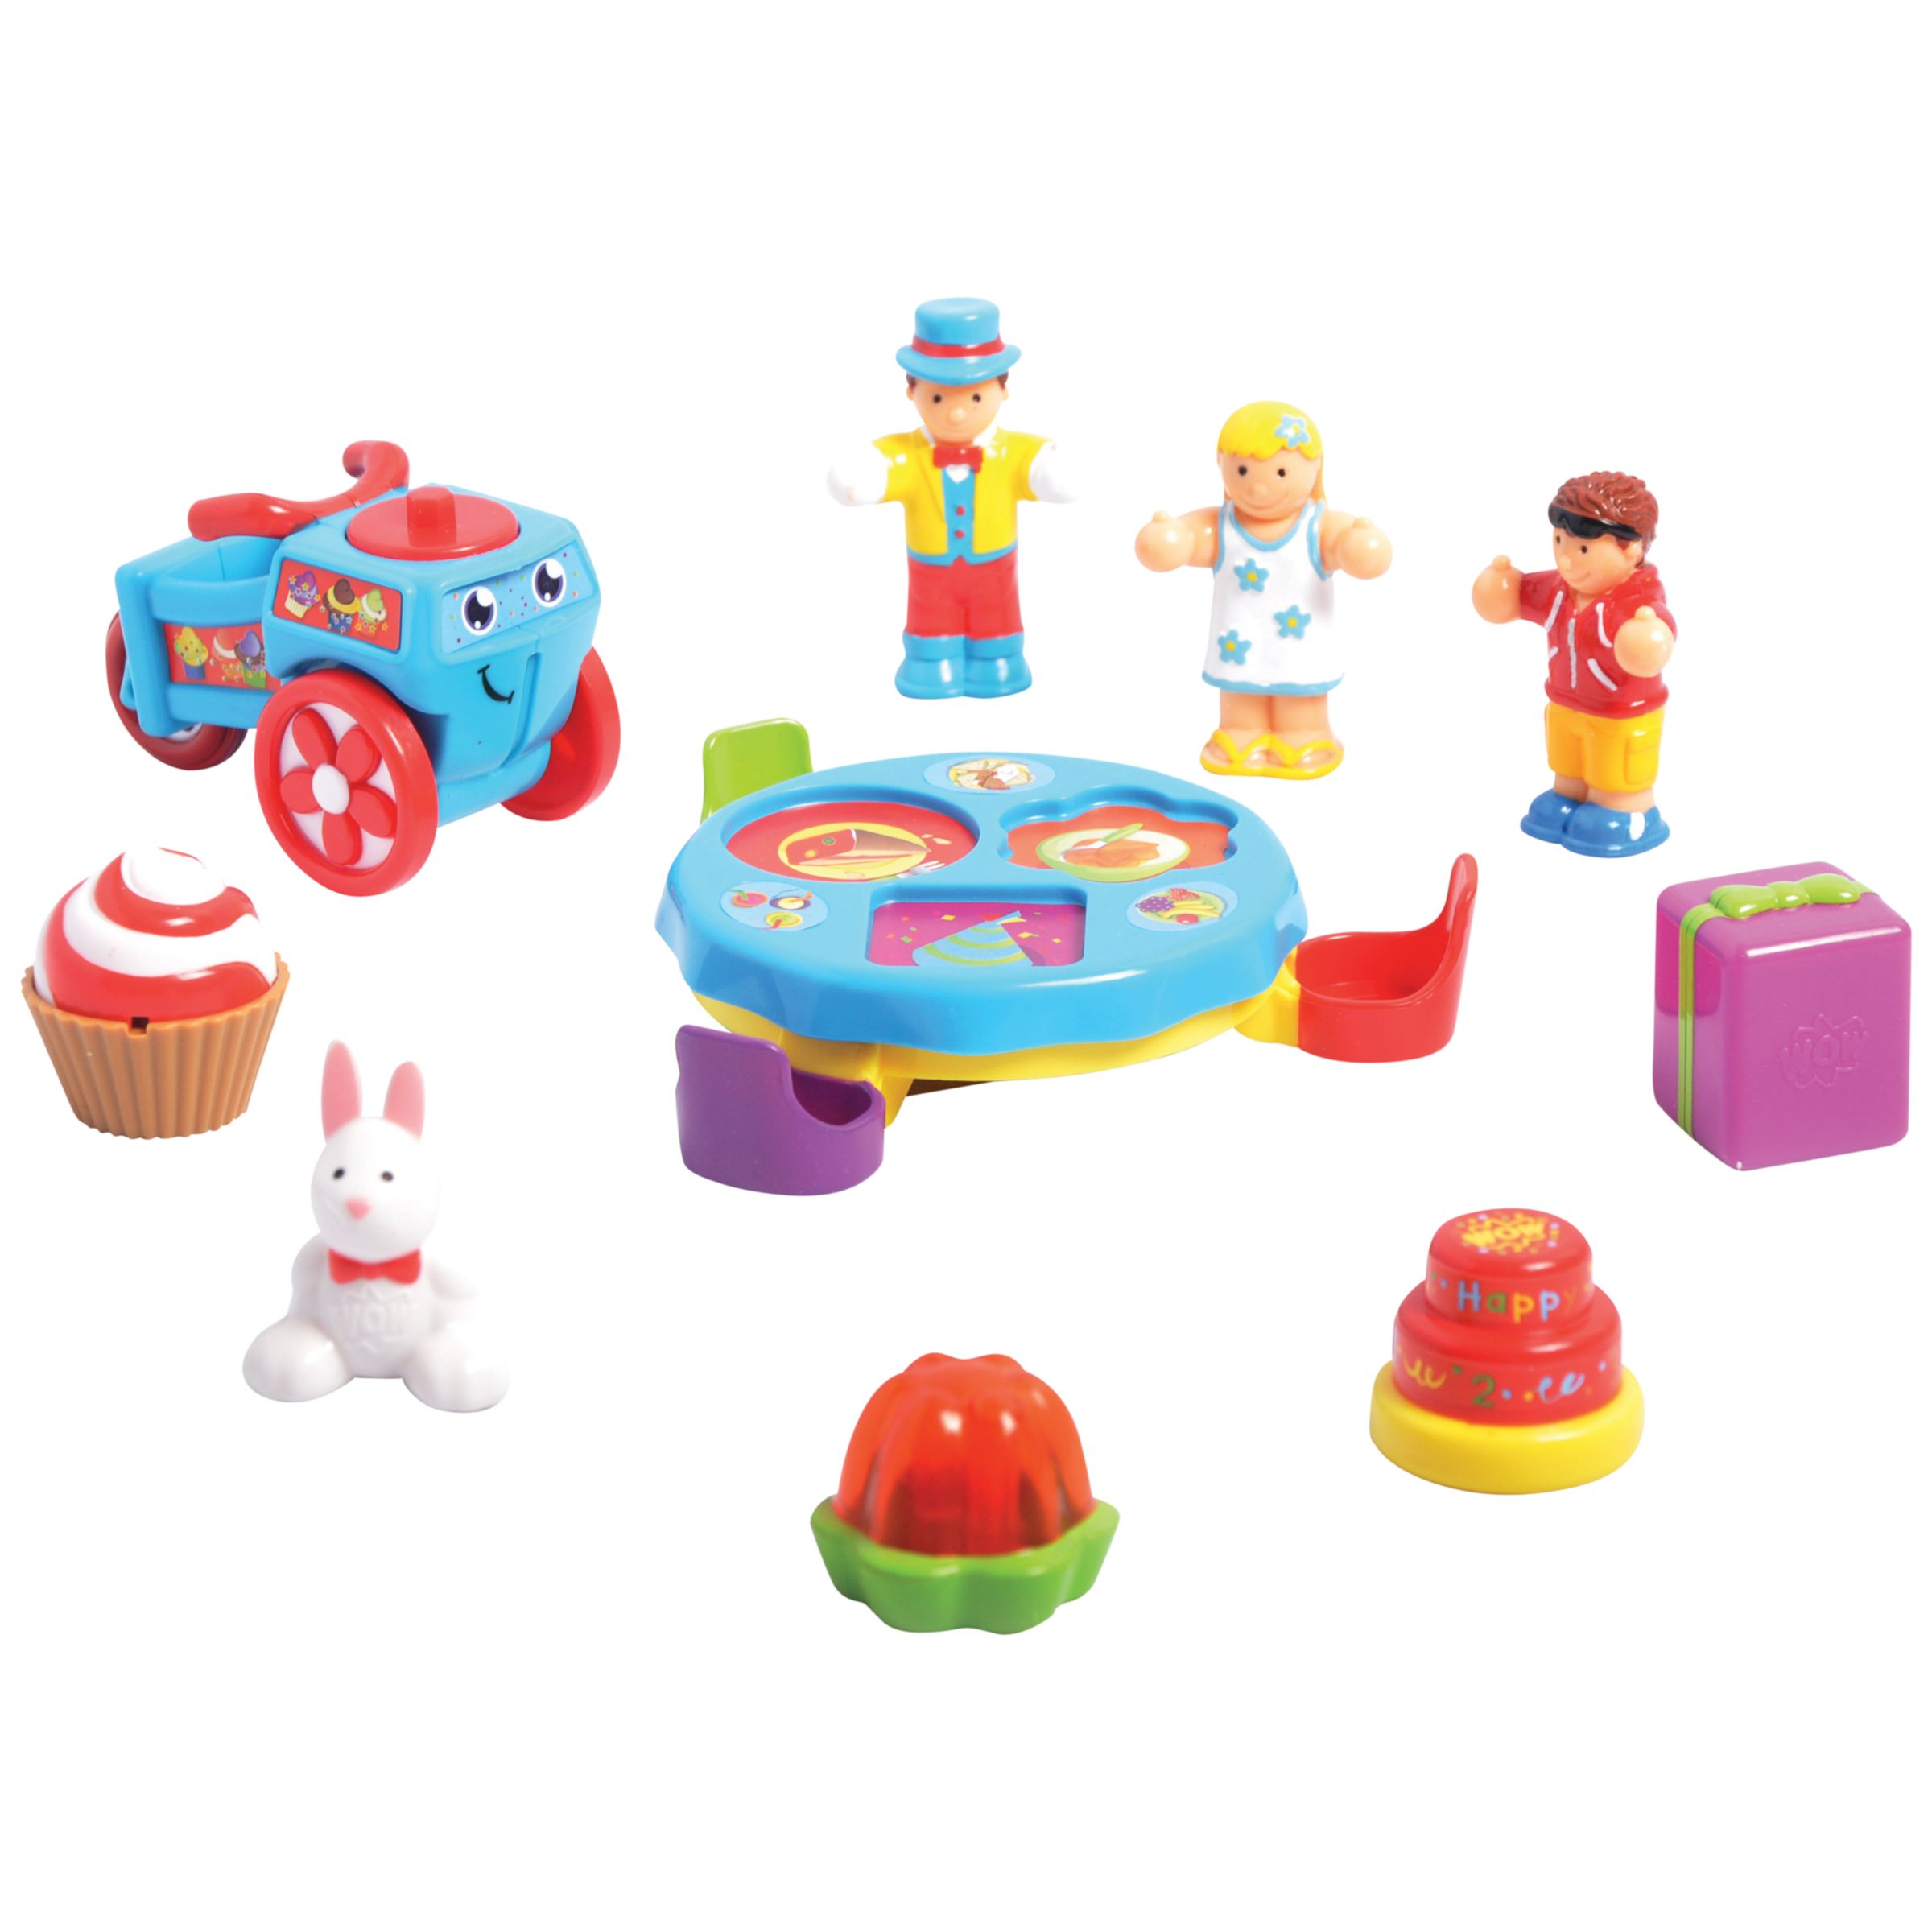 Buy WOW Toys Sort And Spin Birthday Party Playset John Lewis